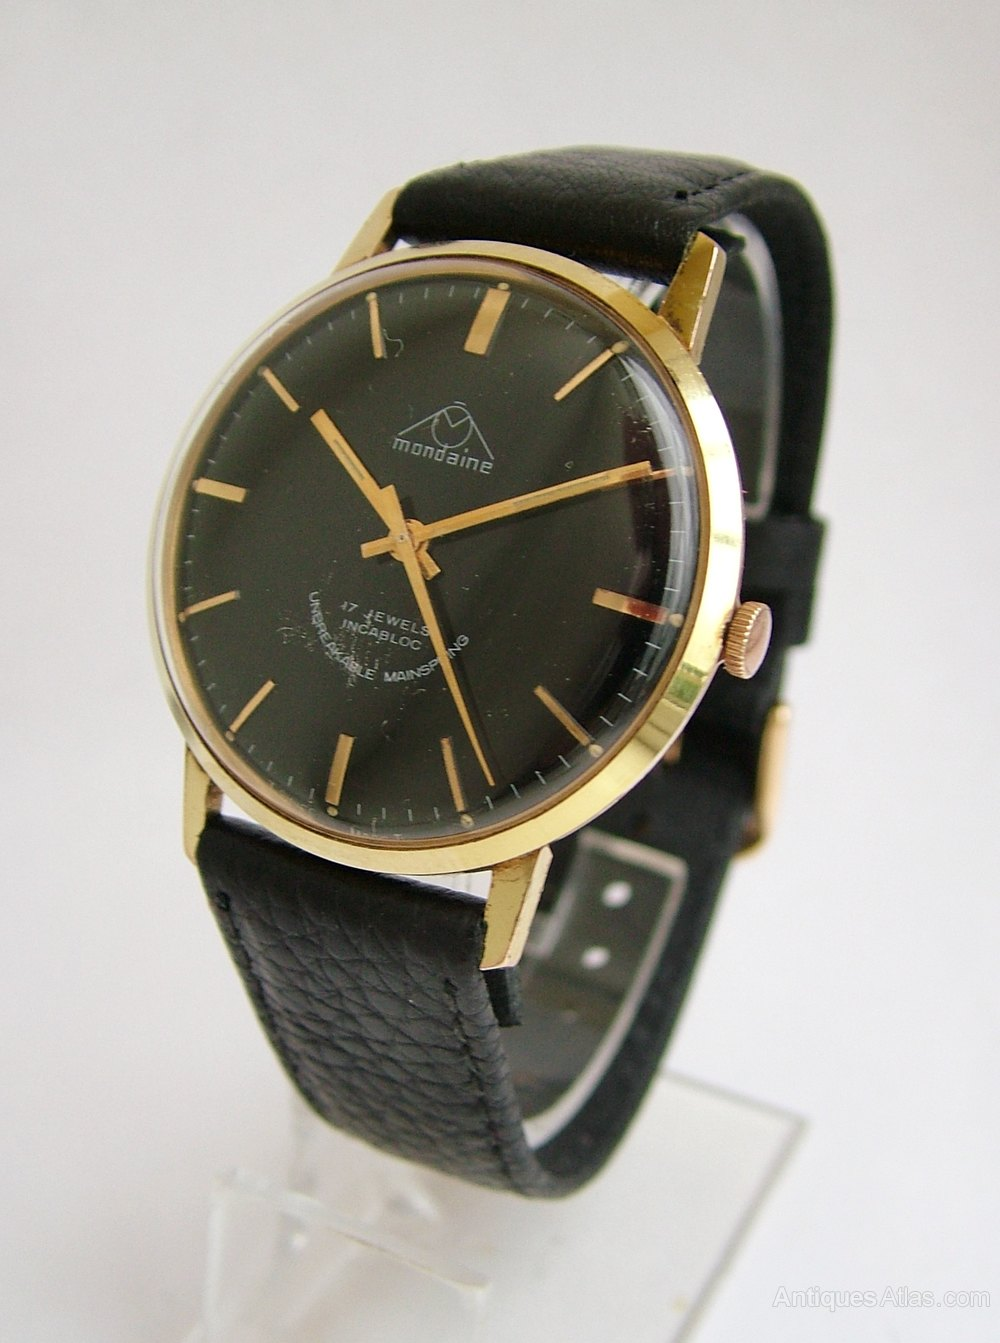 Antiques Atlas - Gents 1960s Mondaine Hand Winding Wrist Watch